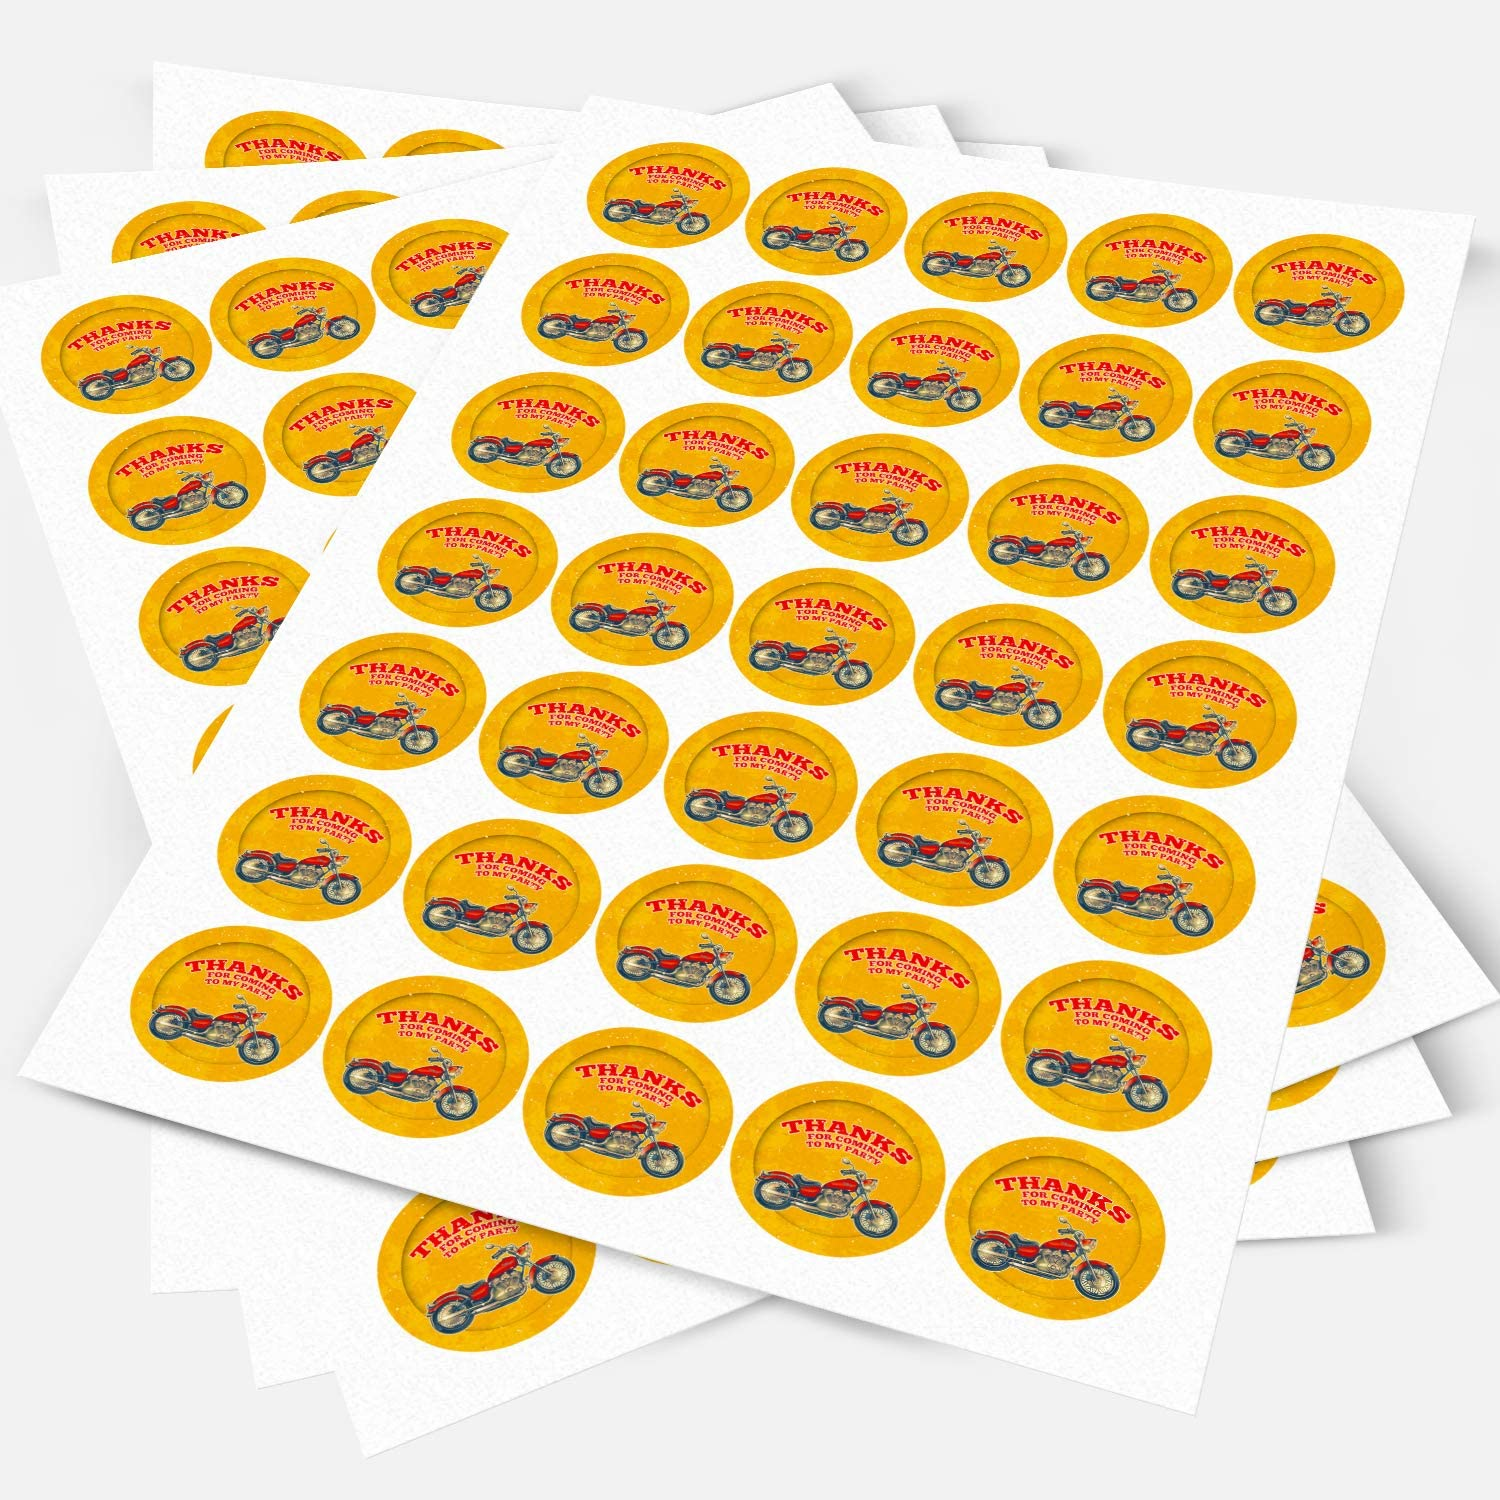 Motorcycle Motorbike Sticker Labels Sweet Cones Party Bags Gift Boxes Favors Thank You 3.5 CM x 35 // 1, A4 Sheet NON-PERSONALISED